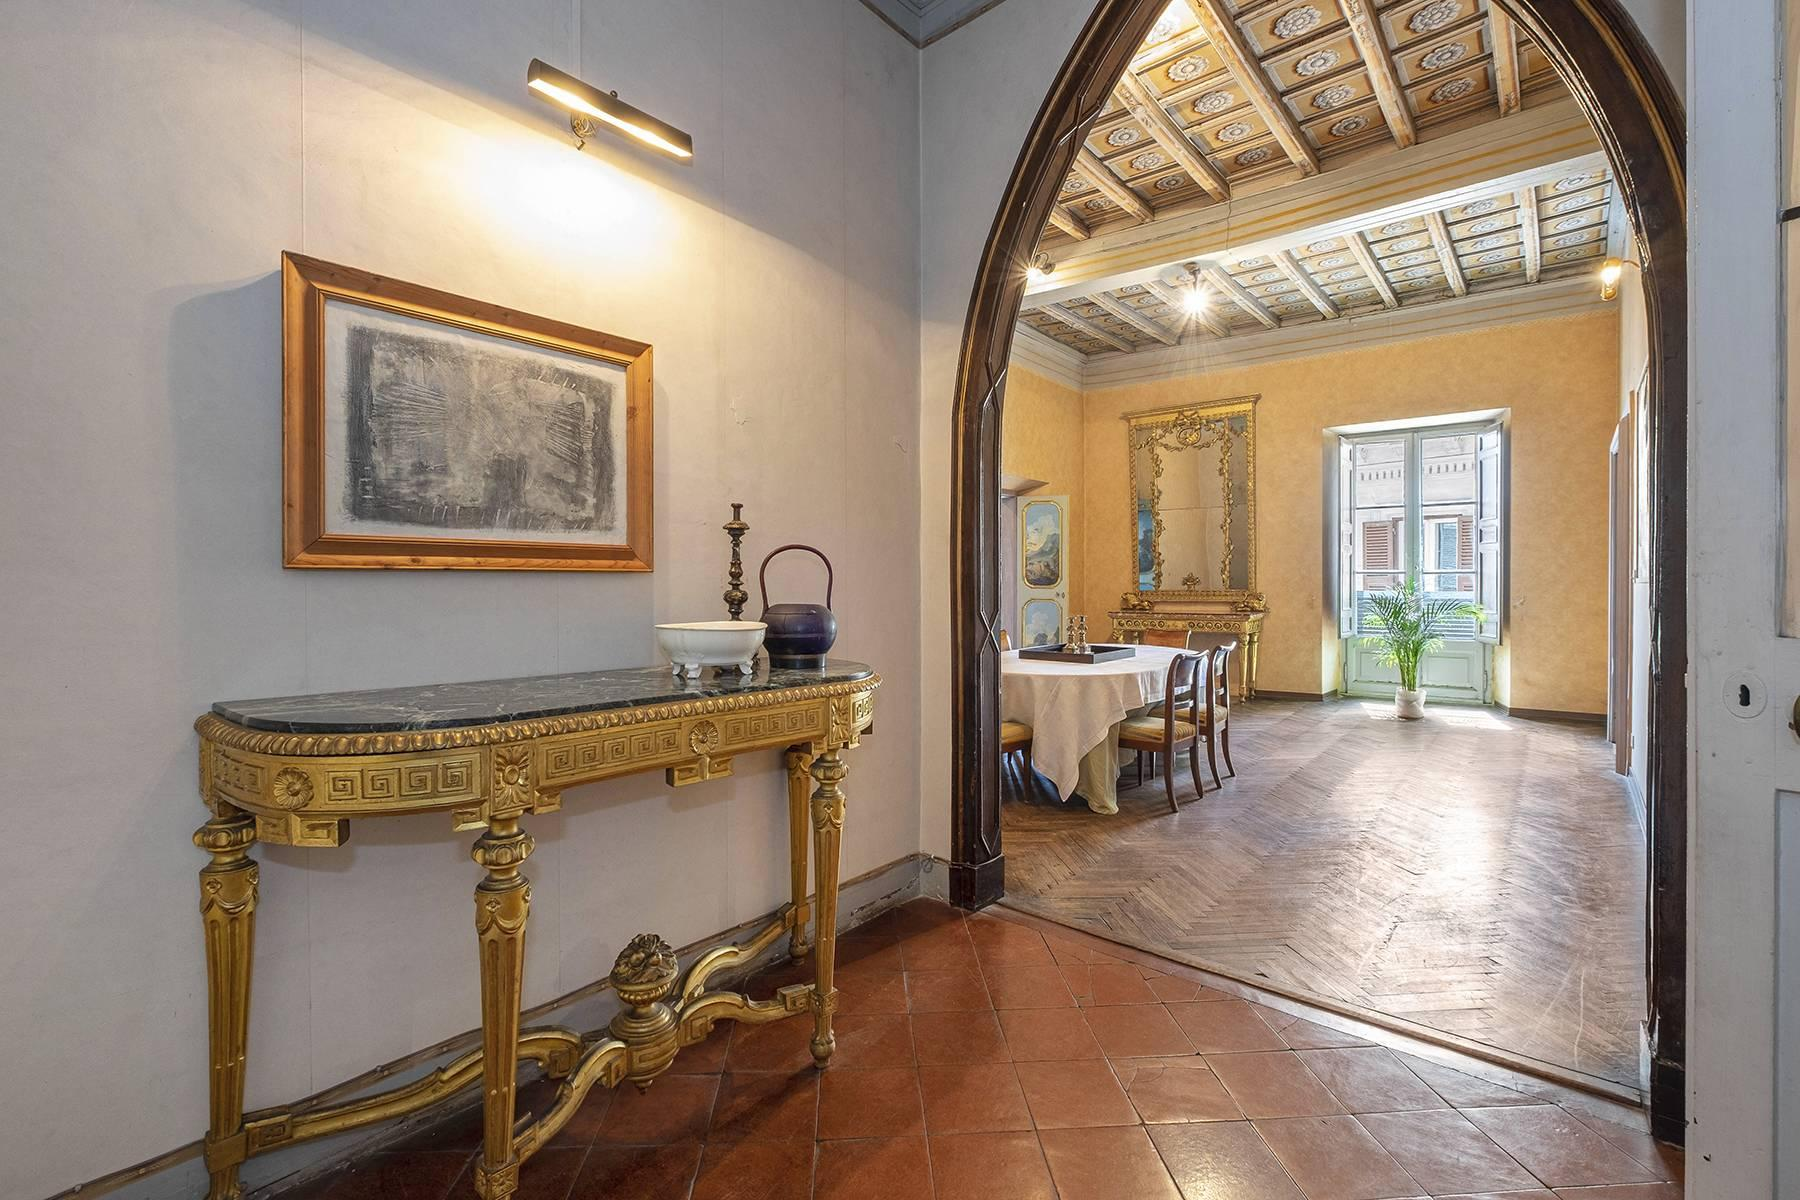 Magnificent apartment in historical property - 14